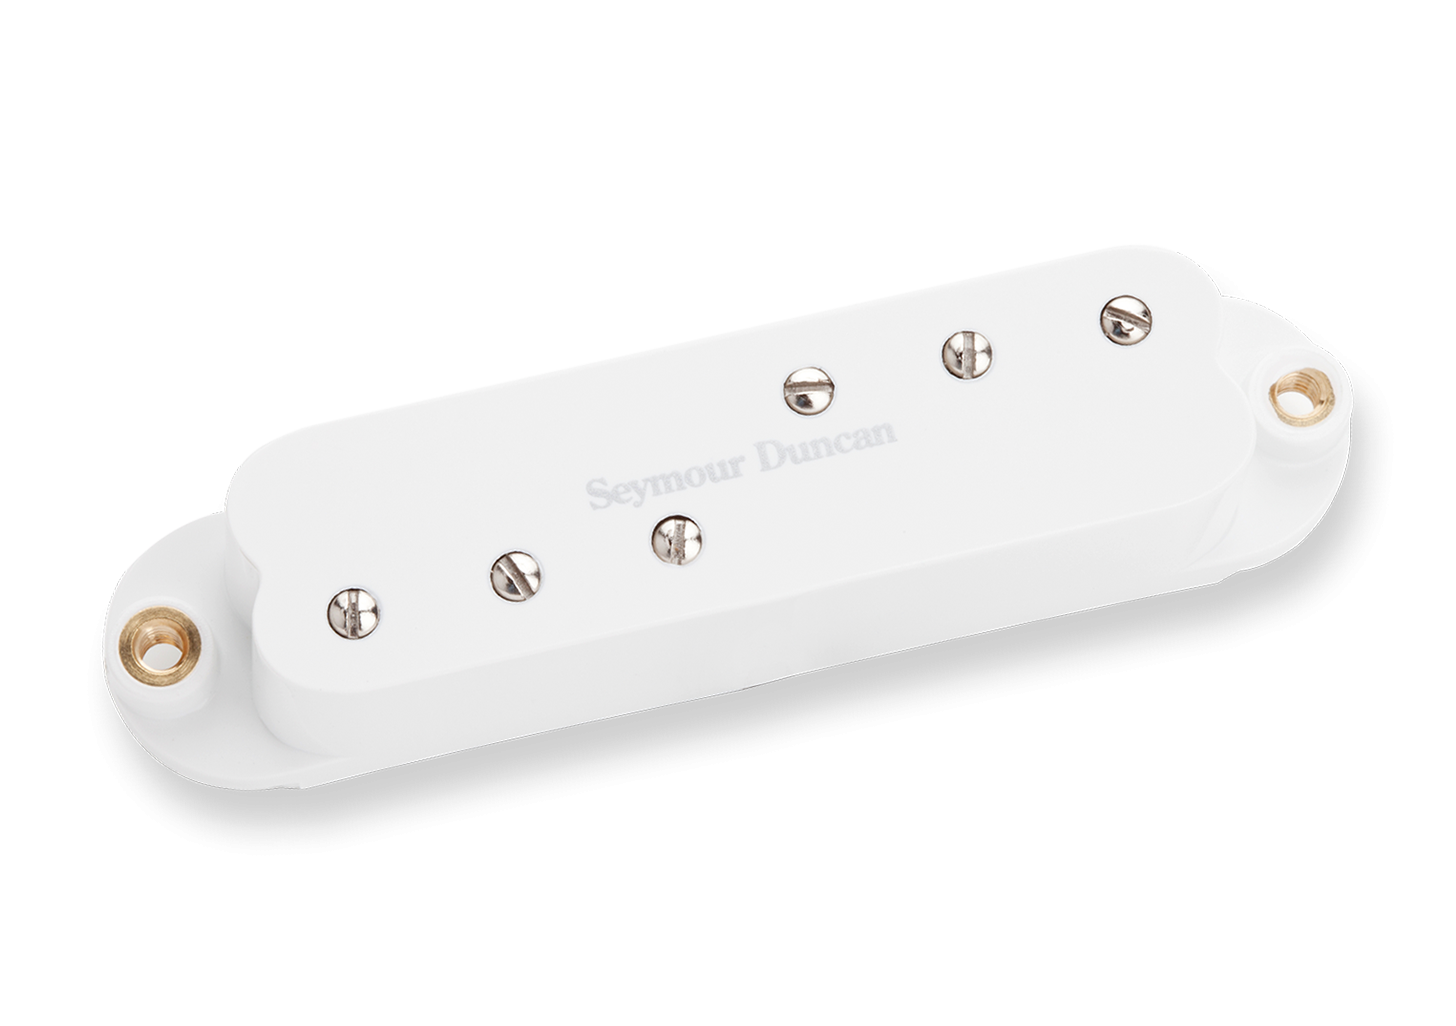 Seymour Duncan Duckbuckers Strat SDBR-1B - Bridge White